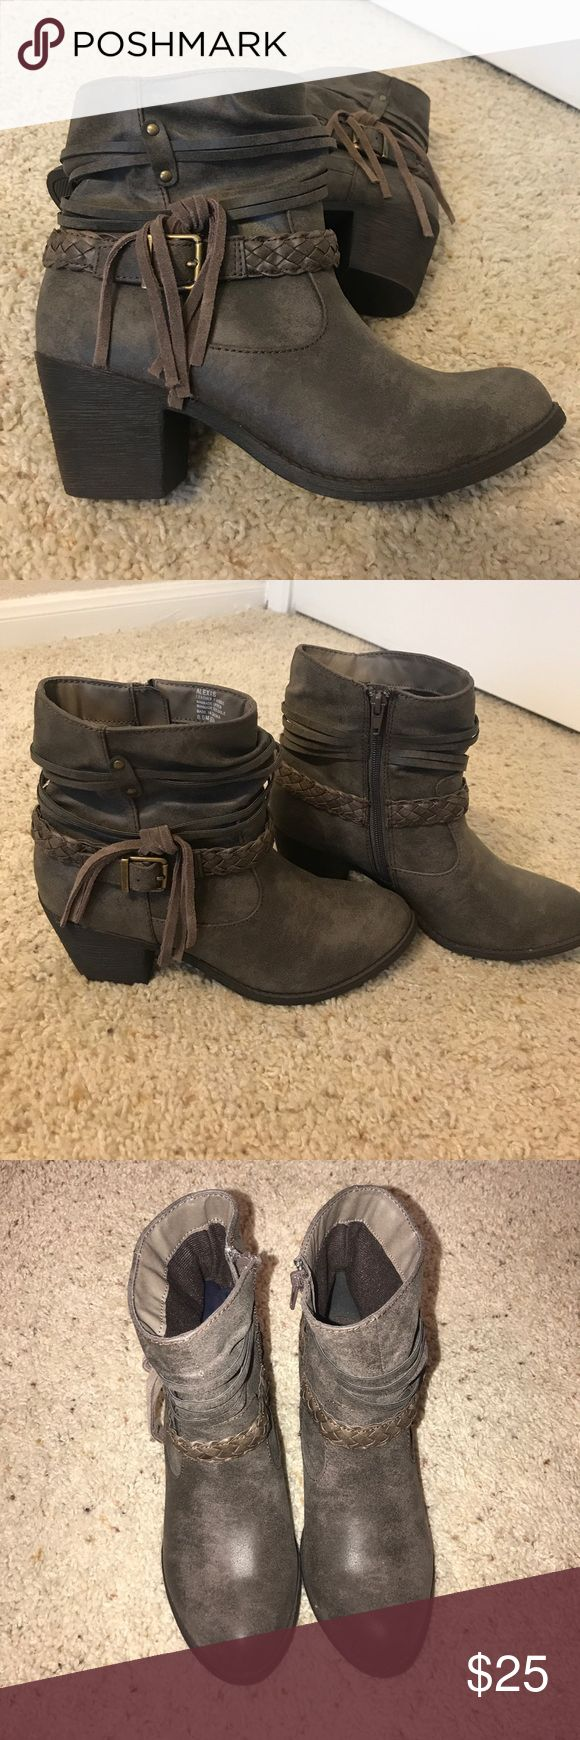 Brown/grey booties Leather fringe size 8.5 material: leather Alexis Shoes Ankle Boots & Booties